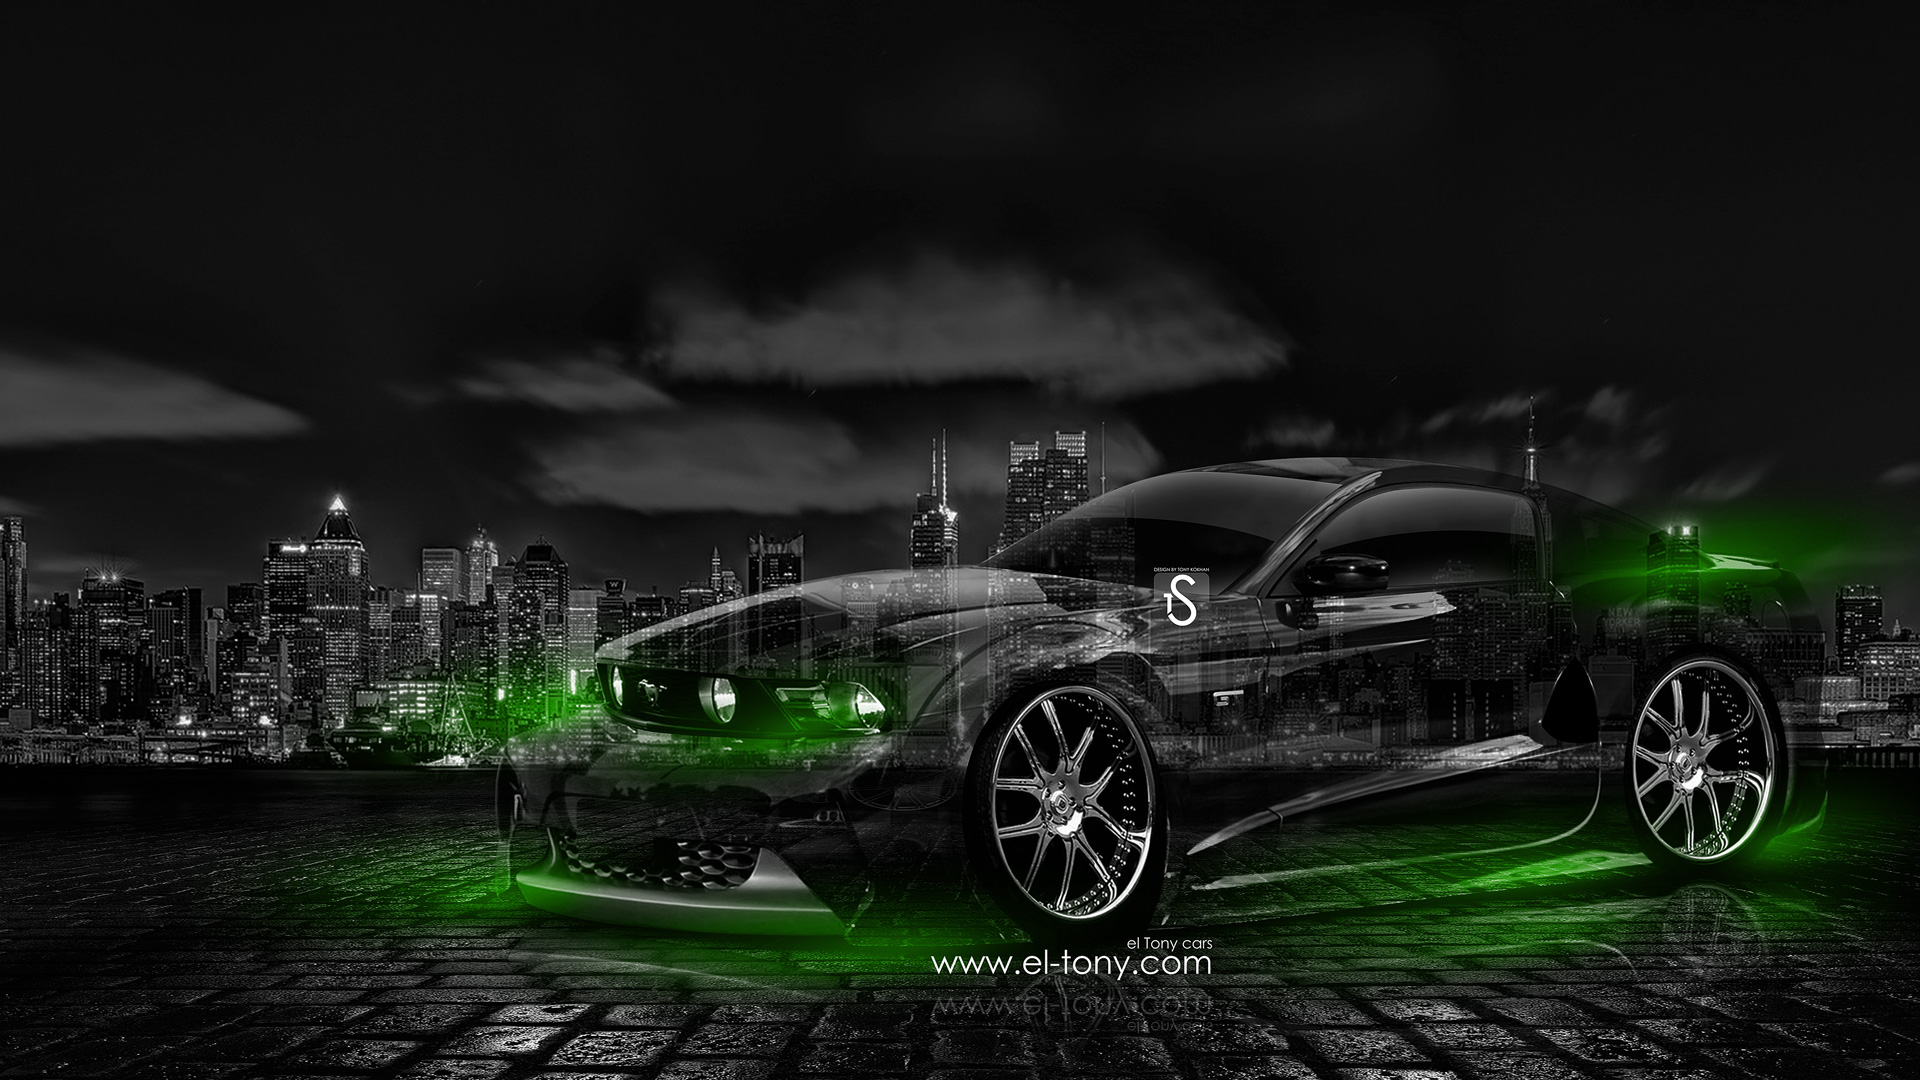 Ford Shelby Truck >> Ford Mustang GT Muscle Crystal City Car 2014 | el Tony